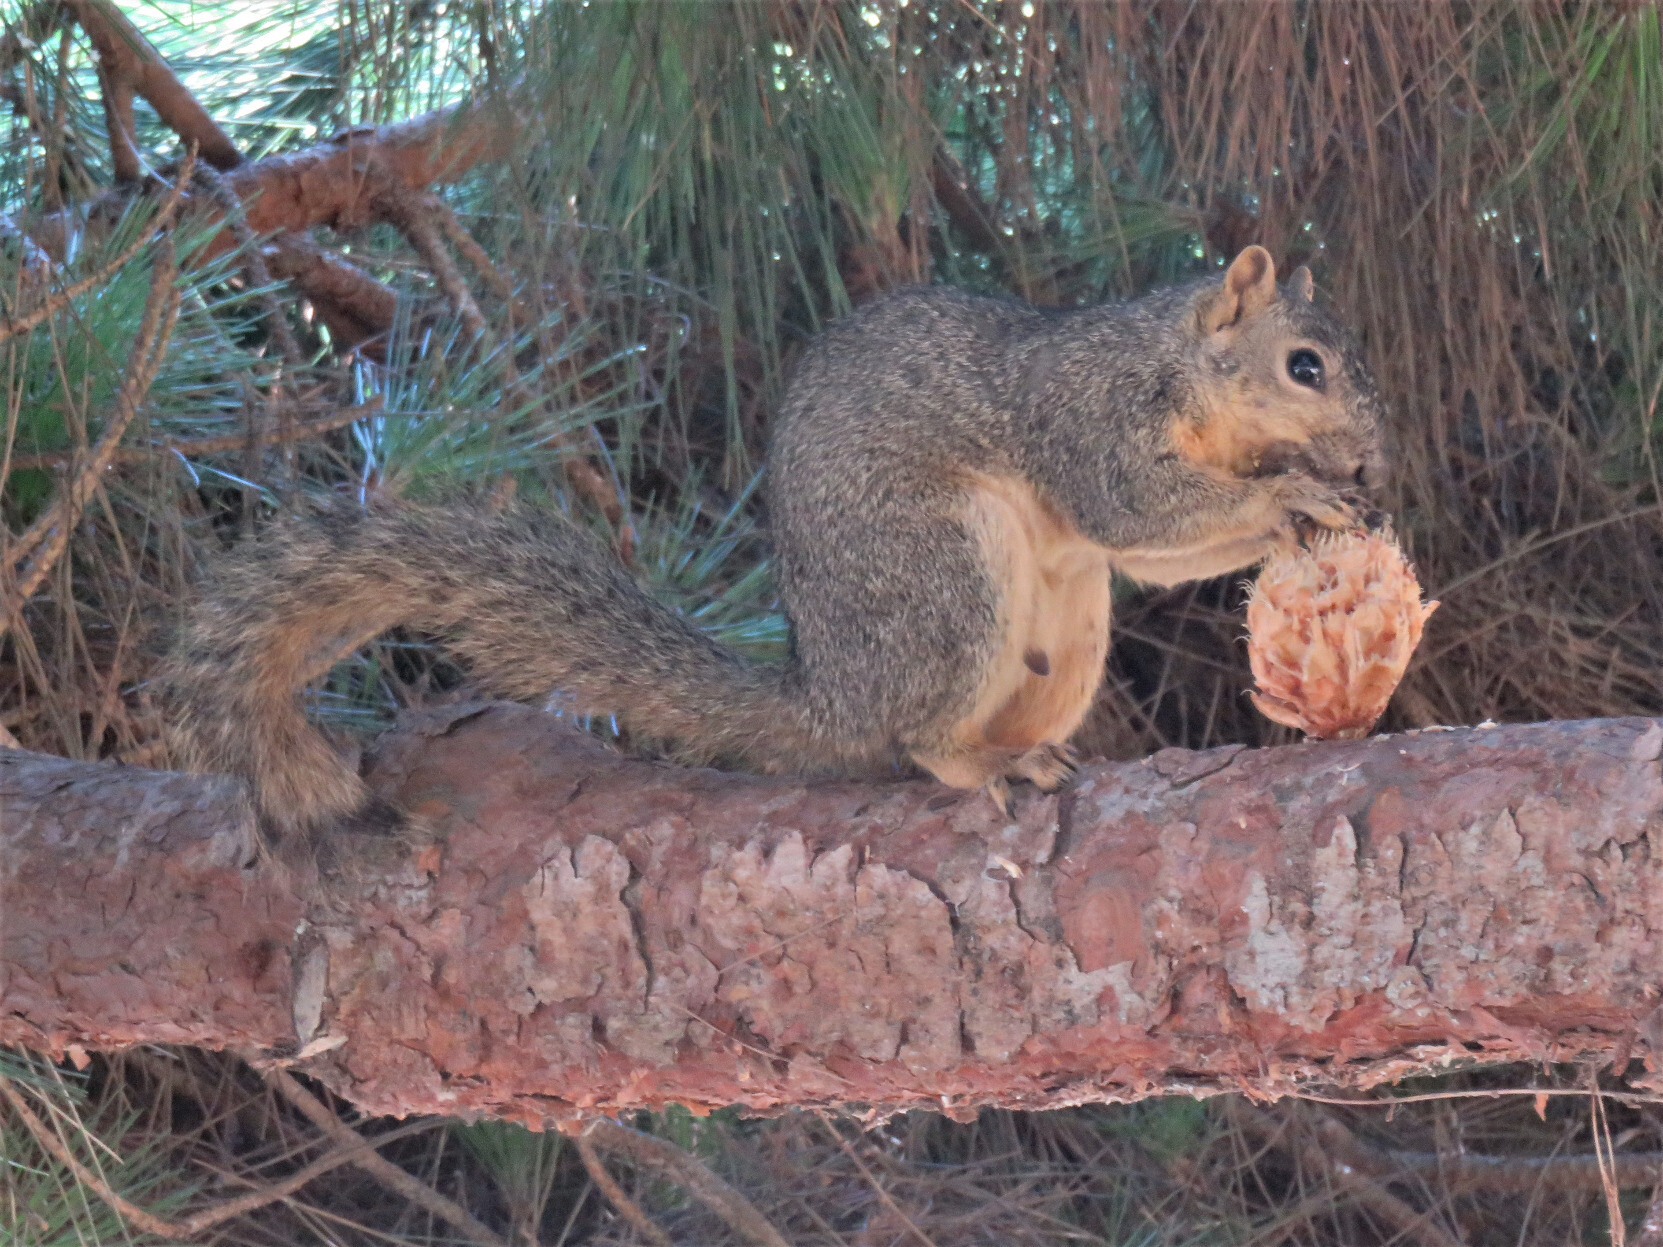 A brownish squirrel with a bushy tail perched on a pine tree branch and eating a cone.